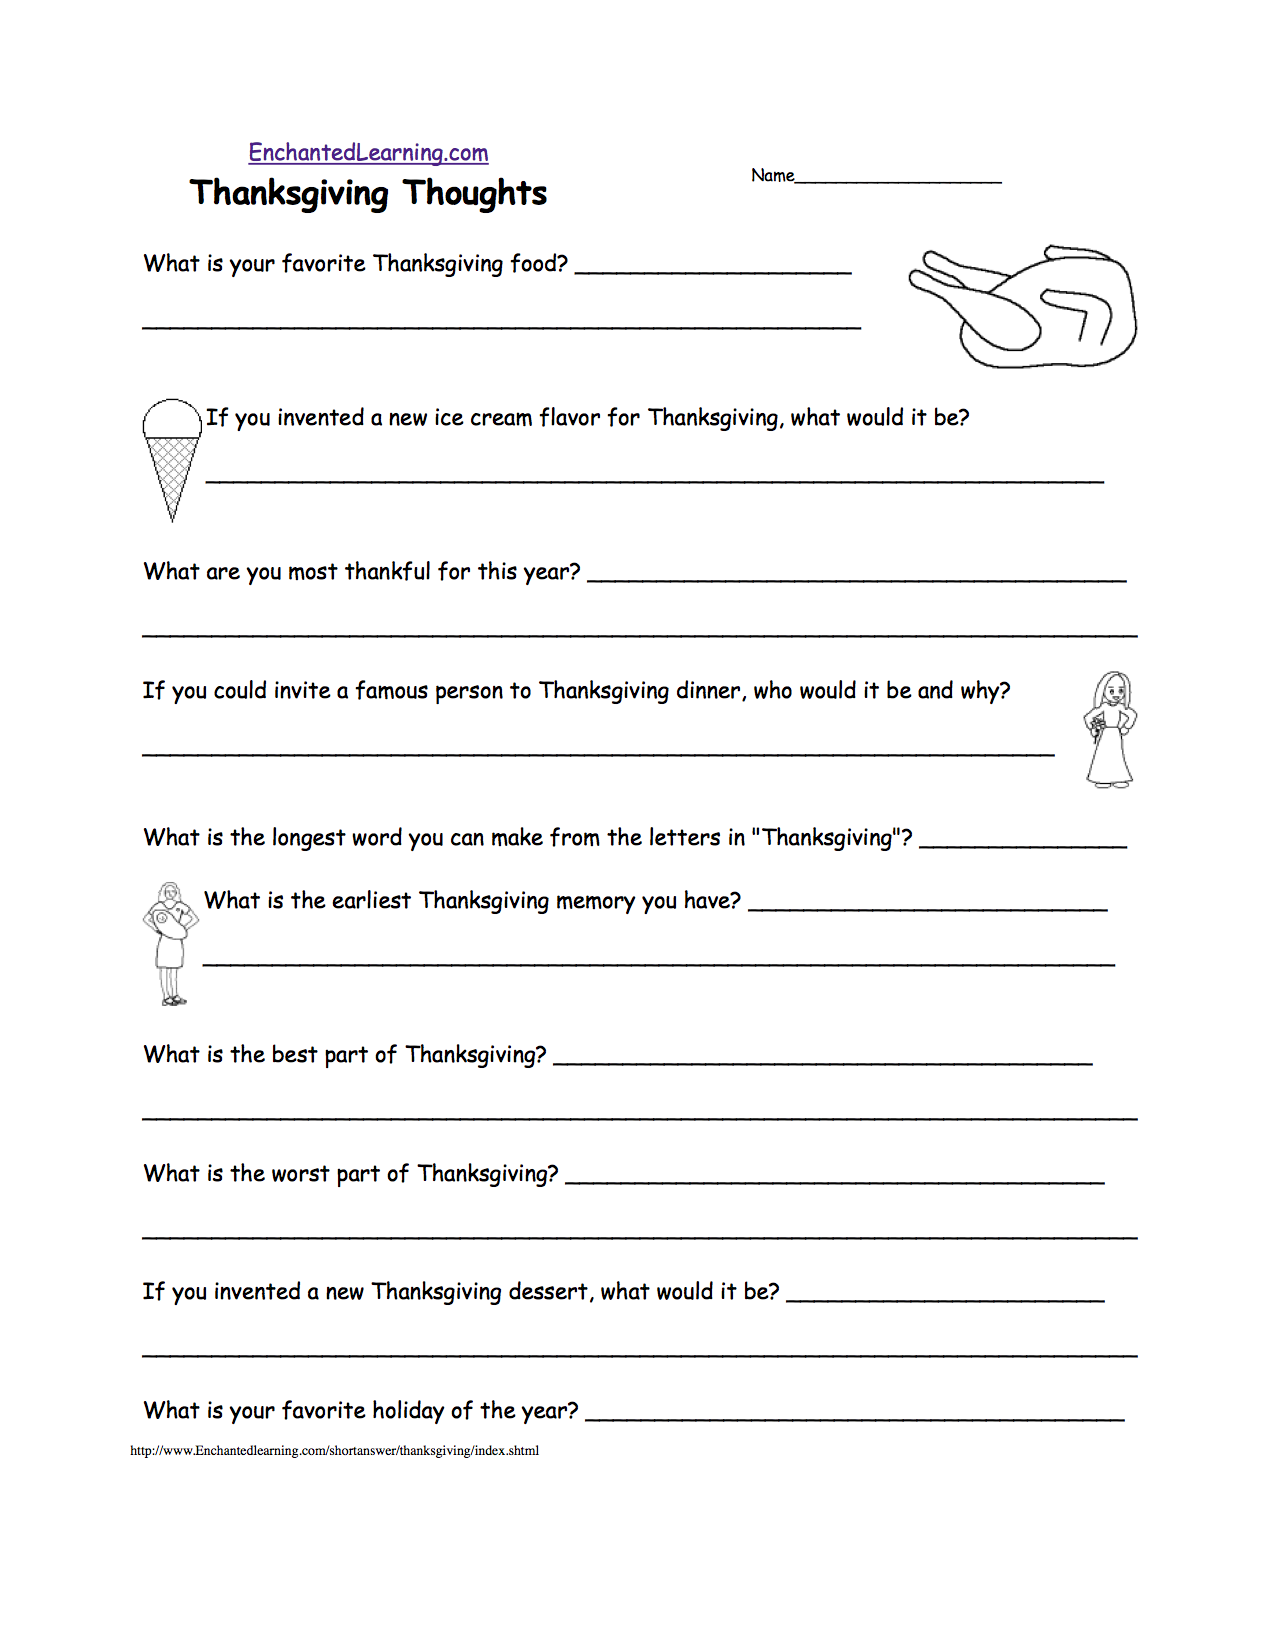 Worksheet Thanksgiving Worksheets thanksgiving crafts worksheets and activities thanksgiving